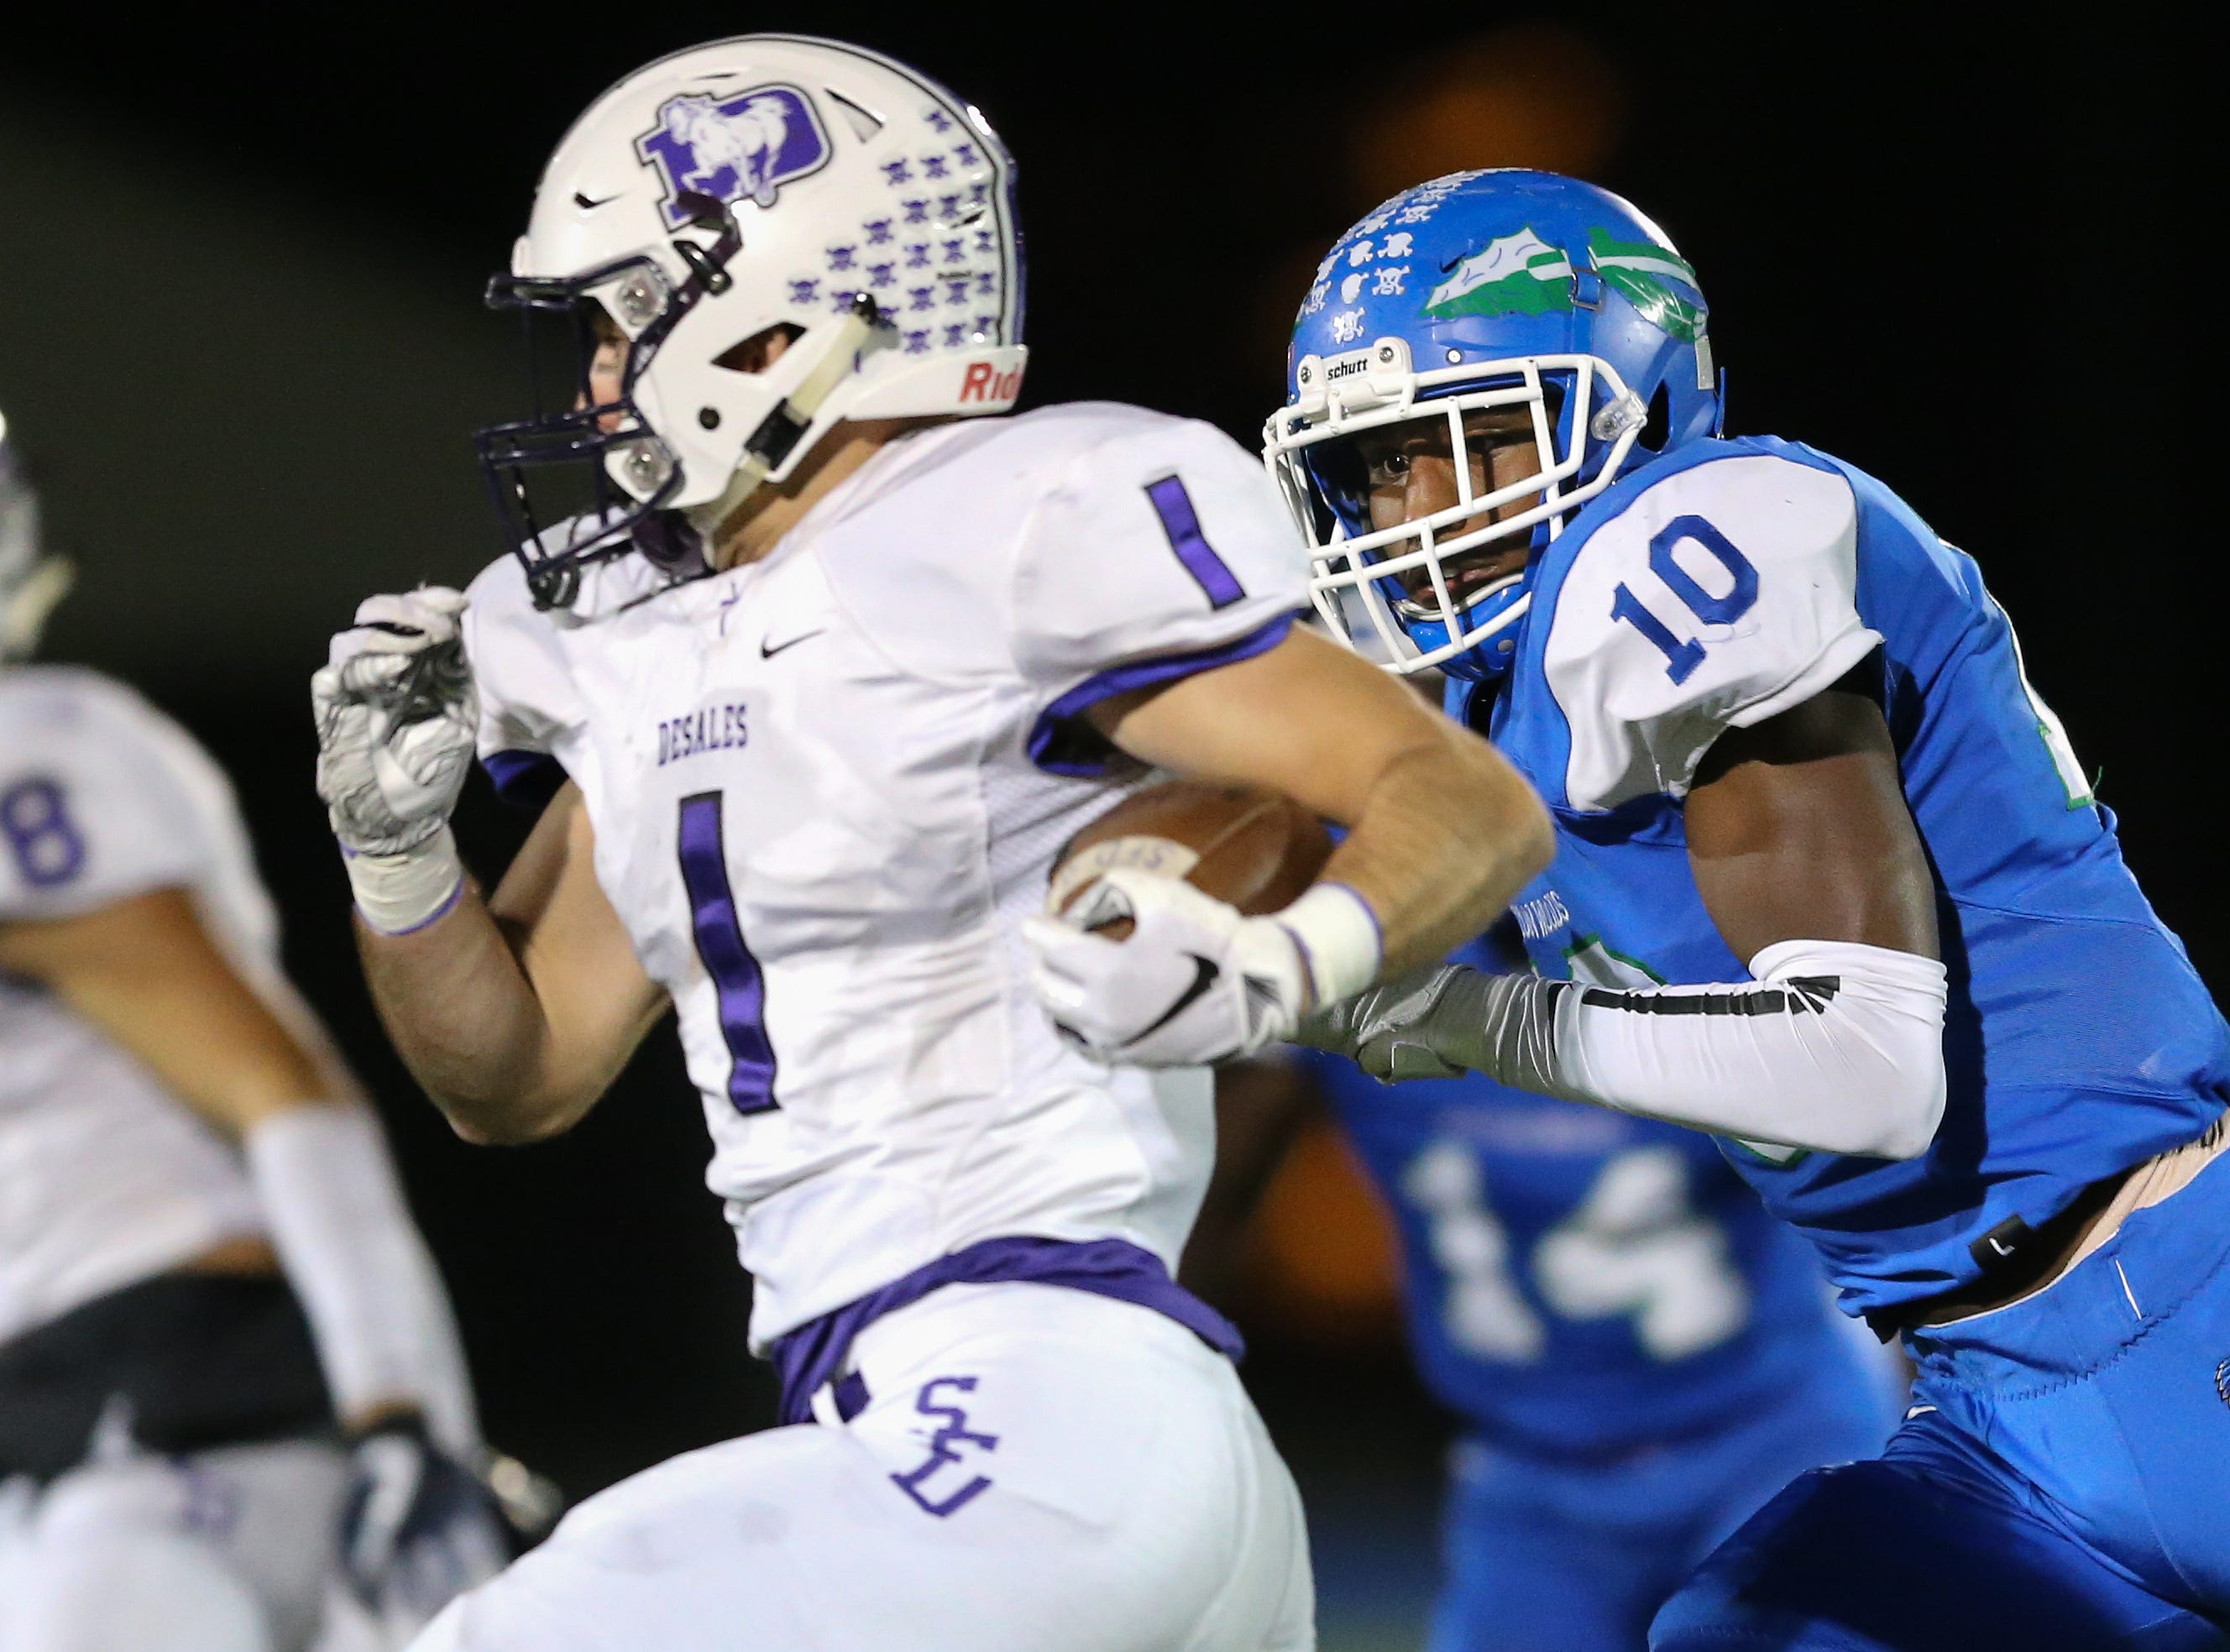 Winton Woods Warriors linebacker Melvin Pleasant (10) tracks St. Francis de Sales Stallions wide receiver Carter Hilleary (1) in the Second quarter during a high school football game between St. Francis de Sales and Winton Woods, Friday, Oct. 19, 2018, at Winton Woods High School in Forest Park, Ohio.